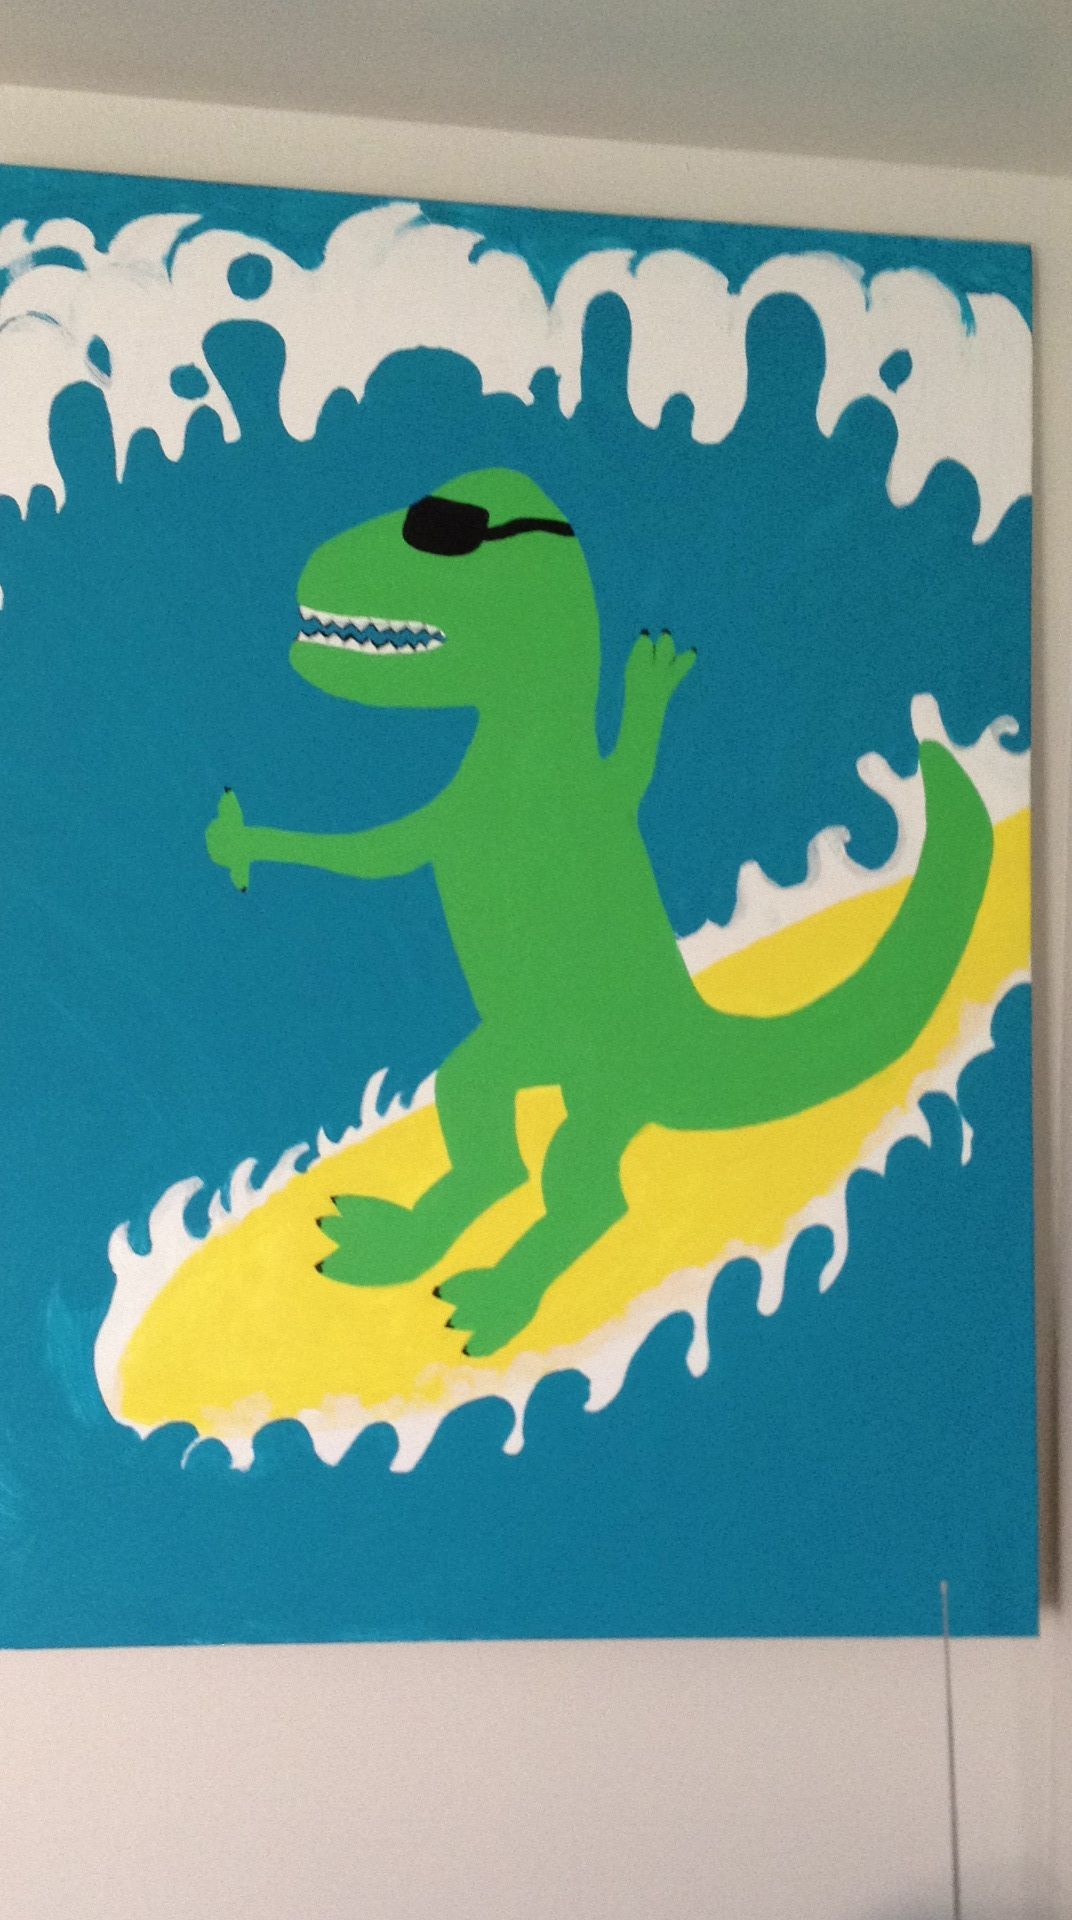 I painted this funny surfing Dino for my son's room. :)